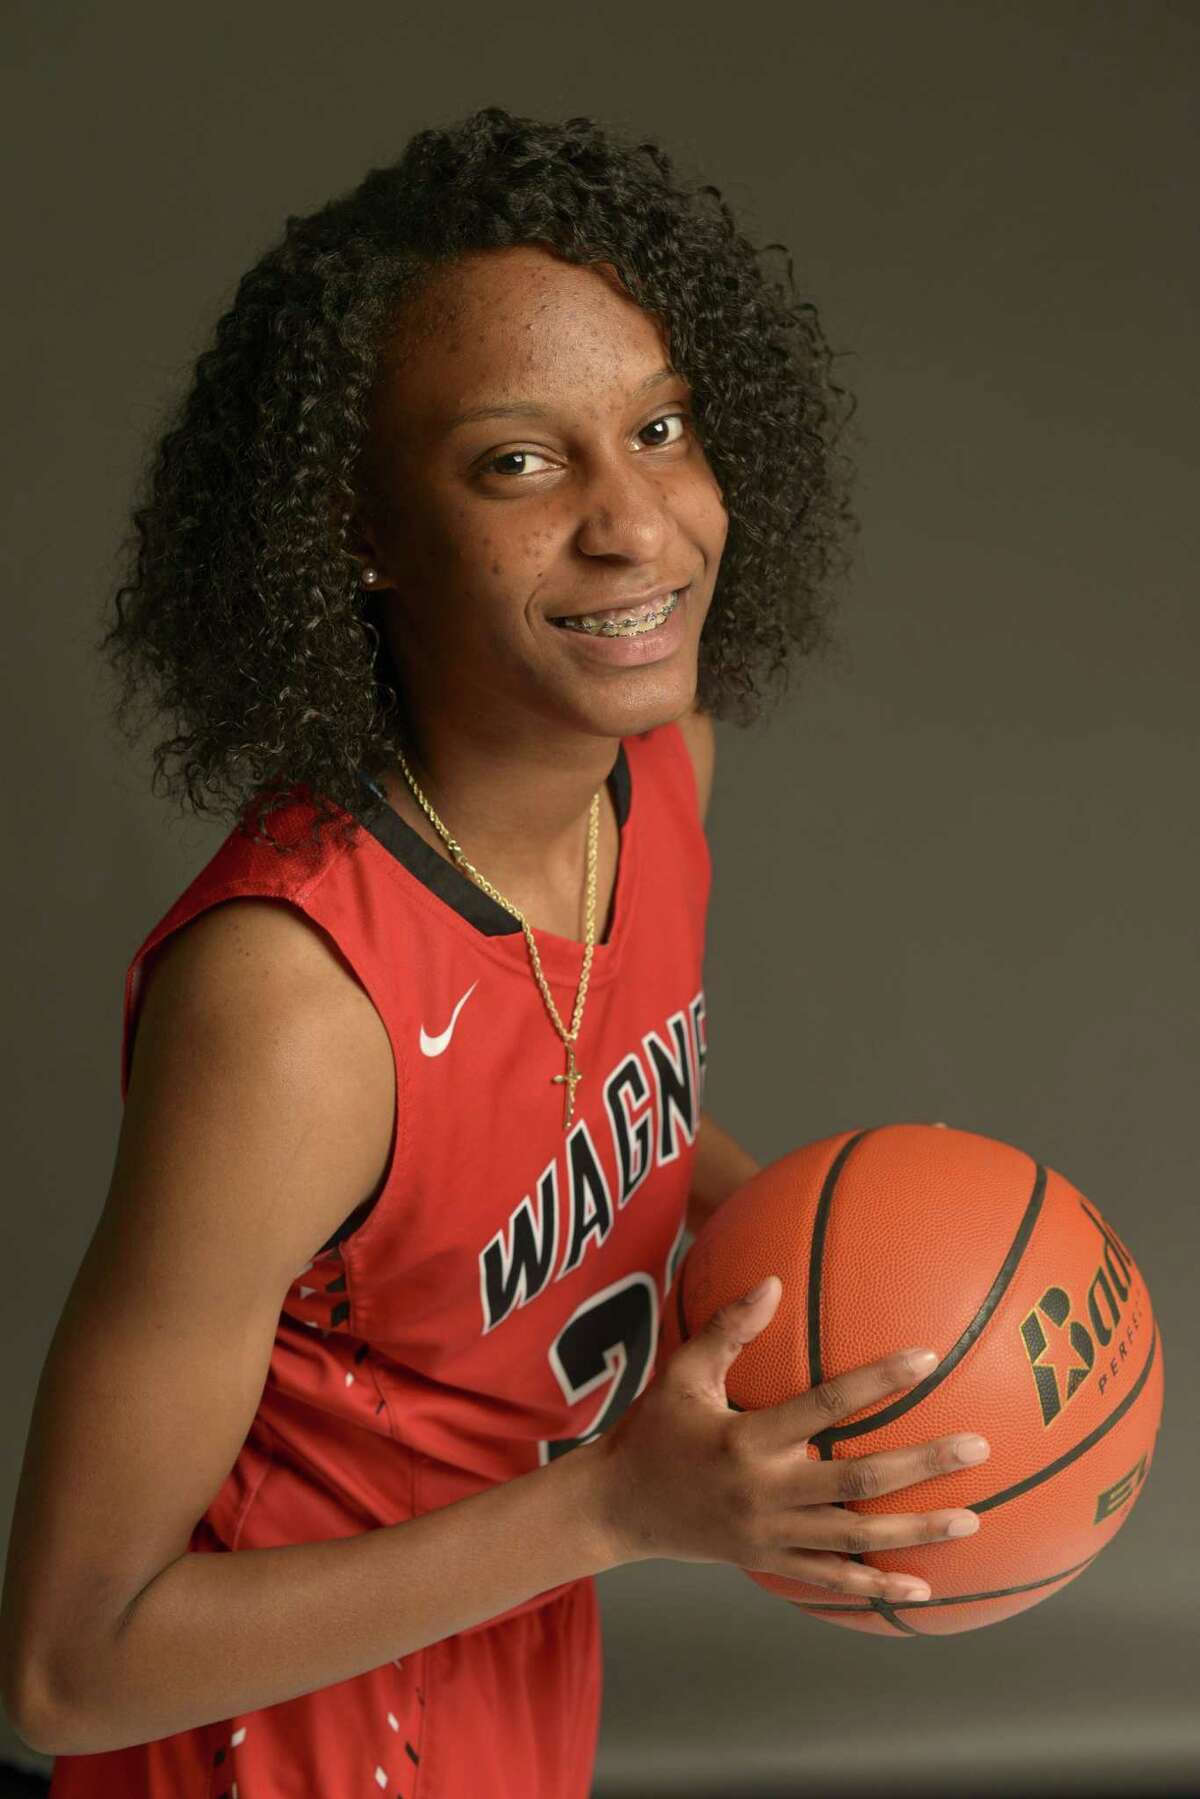 Kiana Williams, Stanford Senior, guard, 5-8 Kiana Williams shared Express-News Player of the Year honors with Georgia's Gabby Connally in 2017. Williams played four seasons at Wagner and is a former high school teammate of Arkansas' Amber Ramirez. Both led the Thunderbirds to UIL state tournament appearances in 2014 and 2015. Williams was selected as a McDonald's All-American in 2017. Williams became Stanford's full-time starting point guard when she was a freshman. She's averaging 13.4 points and has made 294 3-pointers (one shy of the Stanford record) in 131 games (122 starts). On Wednesday, she was selected to the Associated Press All-America third team and was named the Pac-12 Tournament's Most Outstanding Player. First game: Stanford vs. Utah Valley, 9 p.m. Sunday, Alamodome